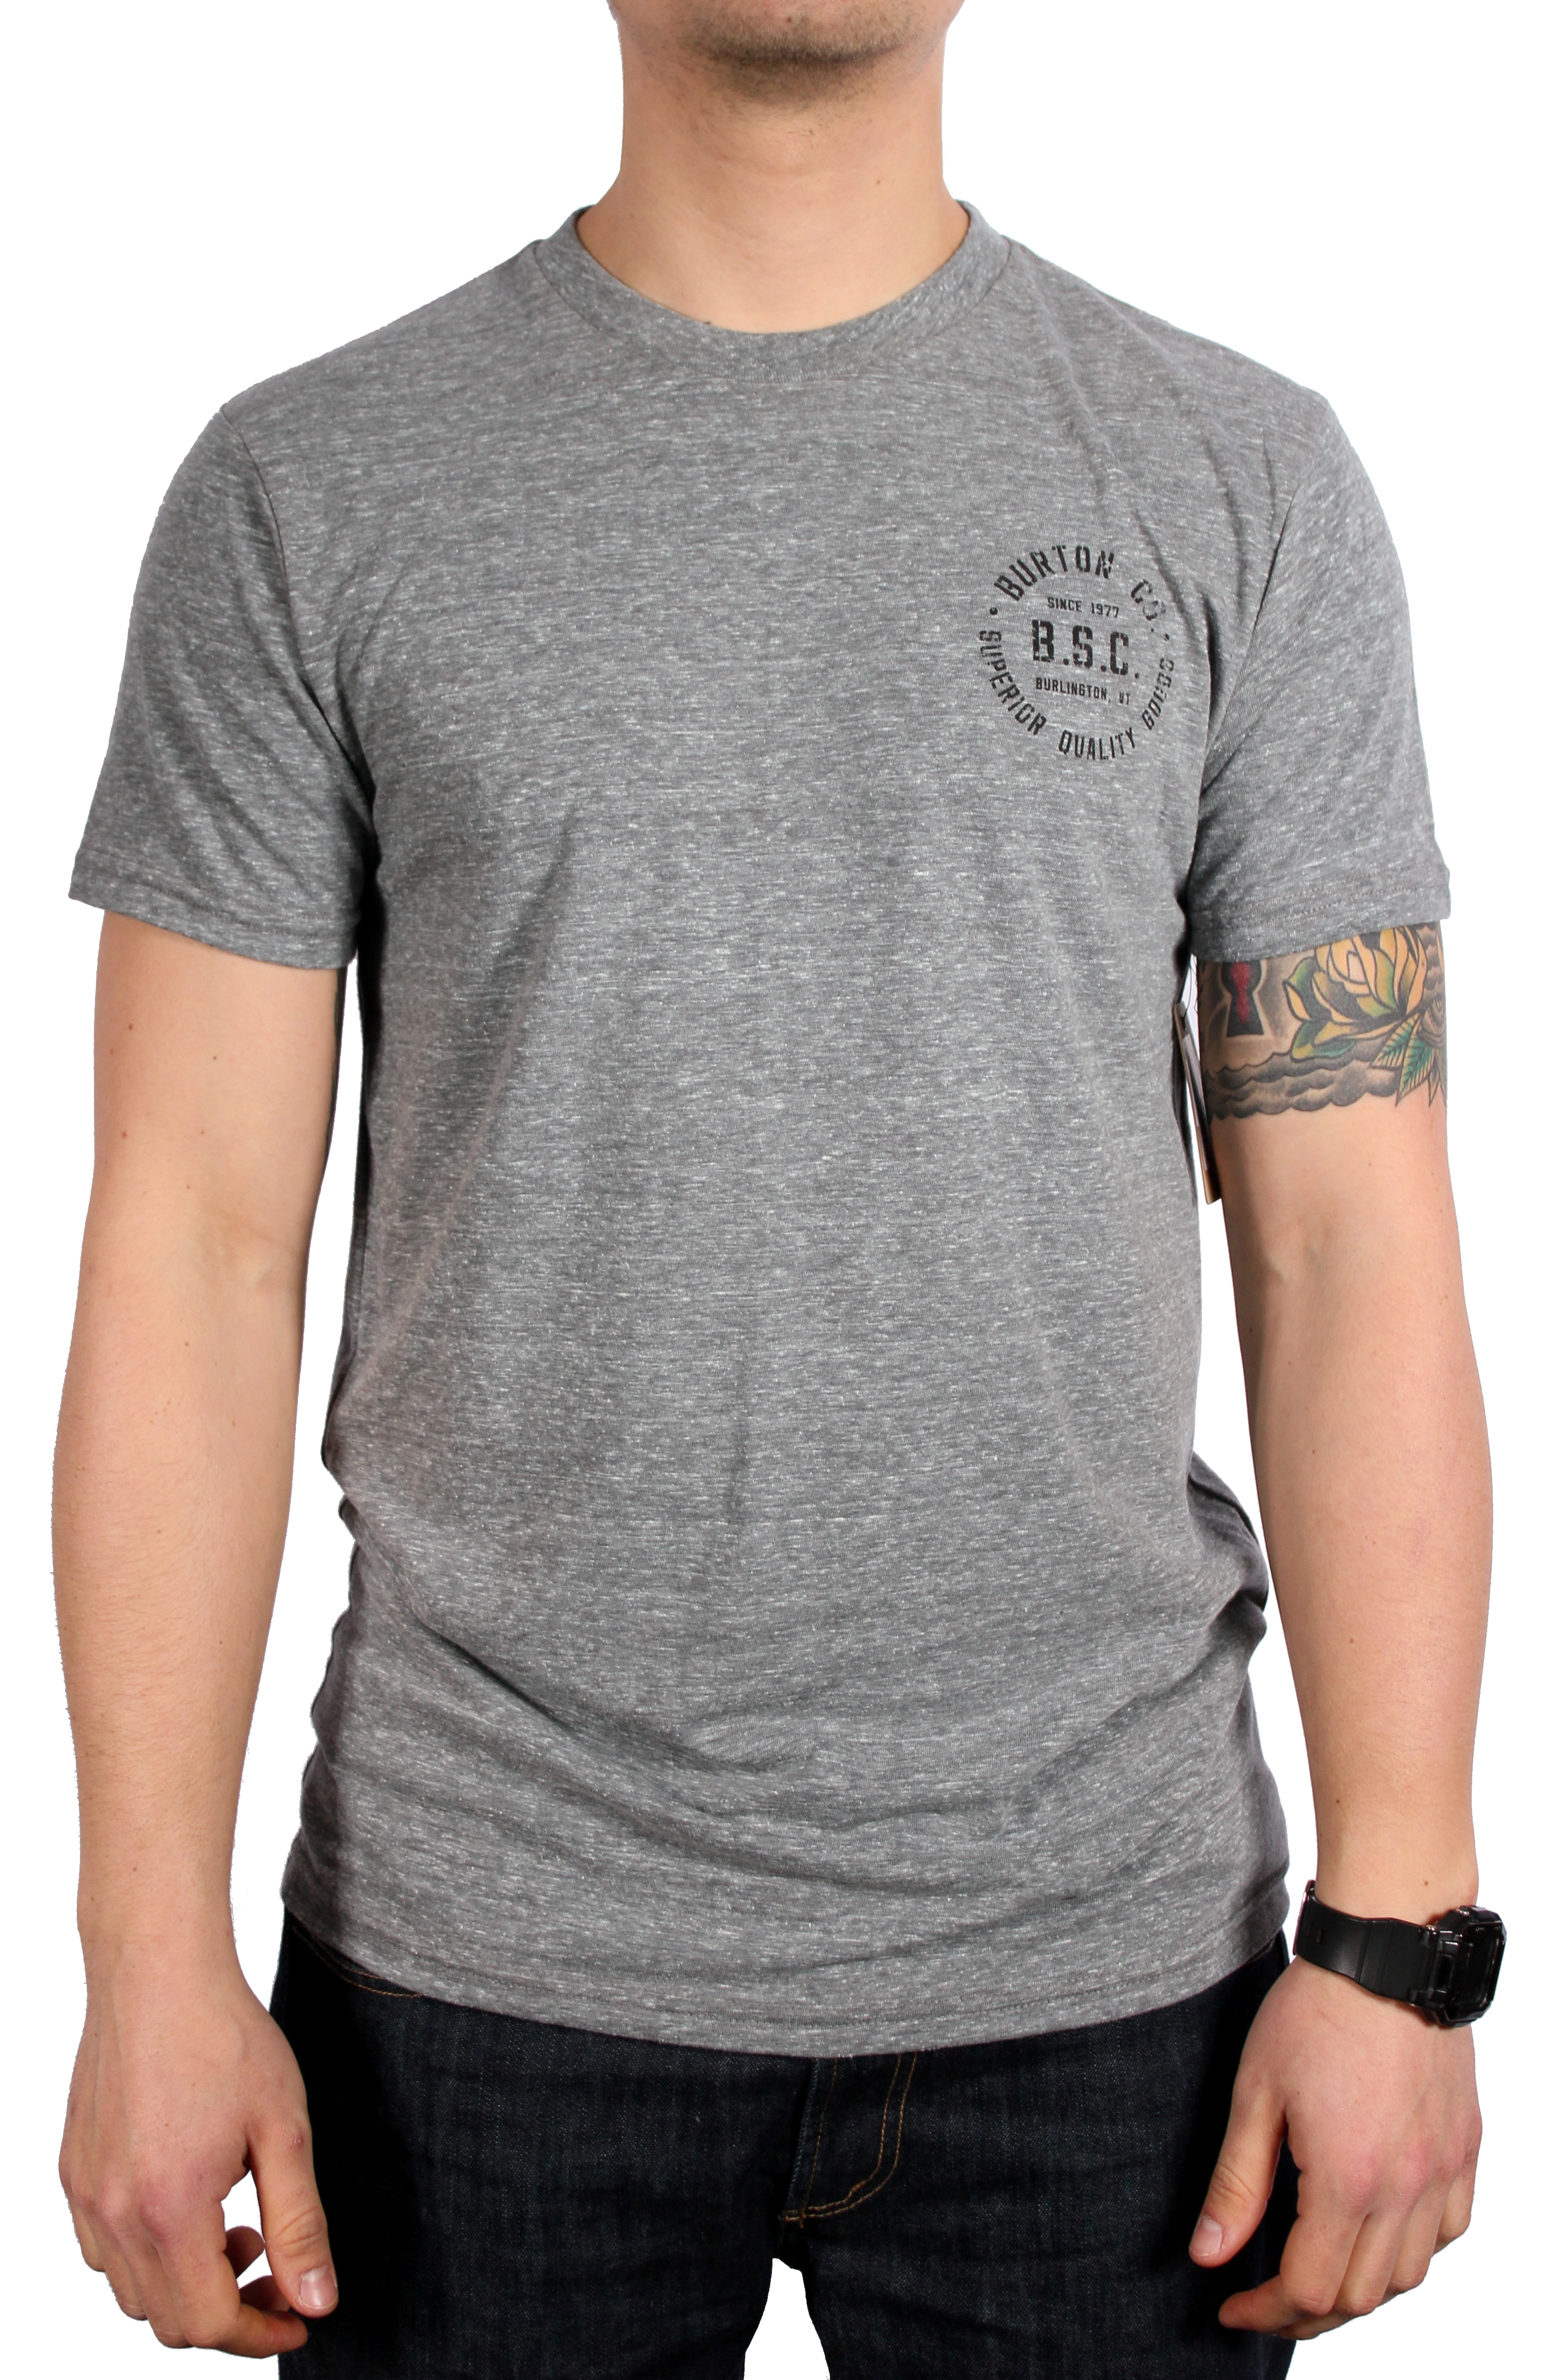 Koszulka Burton B.s.c Tri Htr (Dark Ash Heather)